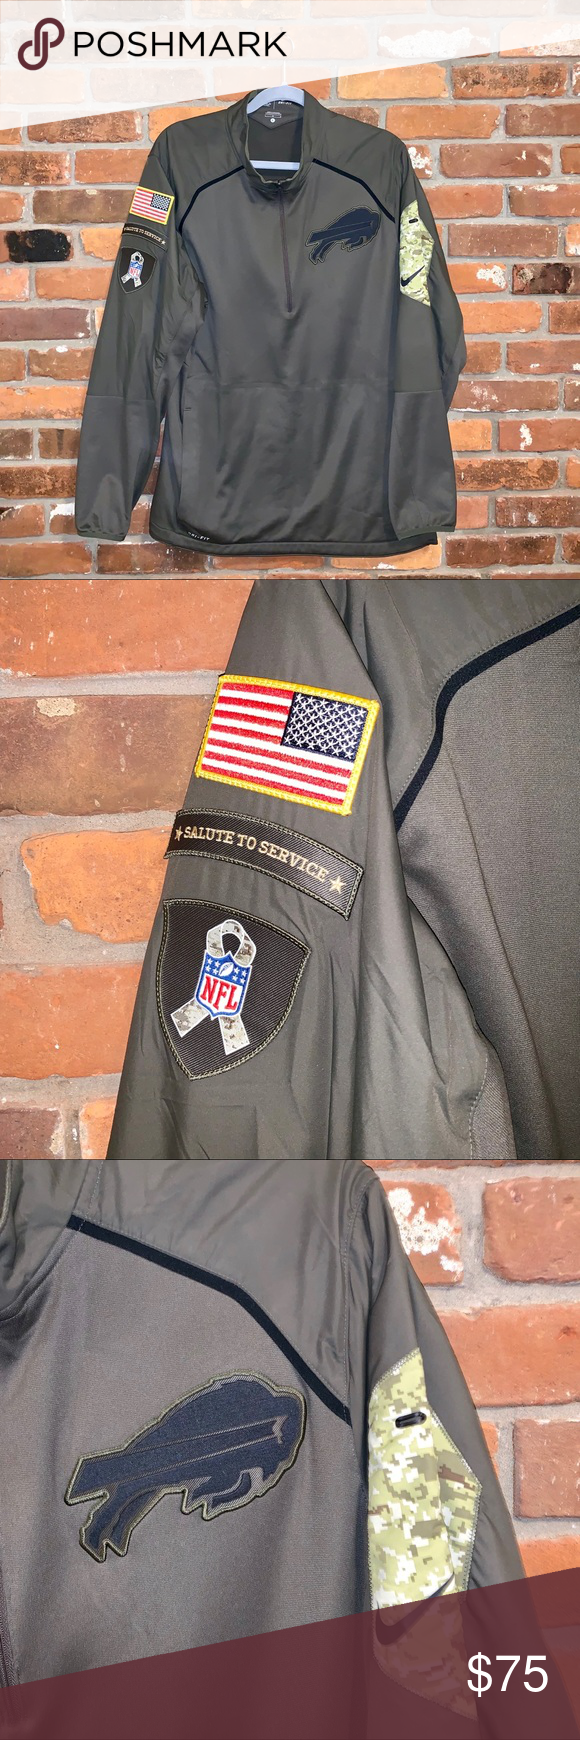 """Nike Olive Salute To Service Bills Pullover Size L Nike Olive Salute To Service Buffalo Bills 1/4 Zip Pullover  Size L Dri-Fit  23"""" pit to pit  29"""" length from shoulder to hem  Approximate measurements done laying flat  Used  Great Condition Nike Shirts Sweatshirts & Hoodies #salutetoservice Nike Olive Salute To Service Bills Pullover Size L Nike Olive Salute To Service Buffalo Bills 1/4 Zip Pullover  Size L Dri-Fit  23"""" pit to pit  29"""" length from shoulder to hem  Approximate measuremen #salutetoservice"""